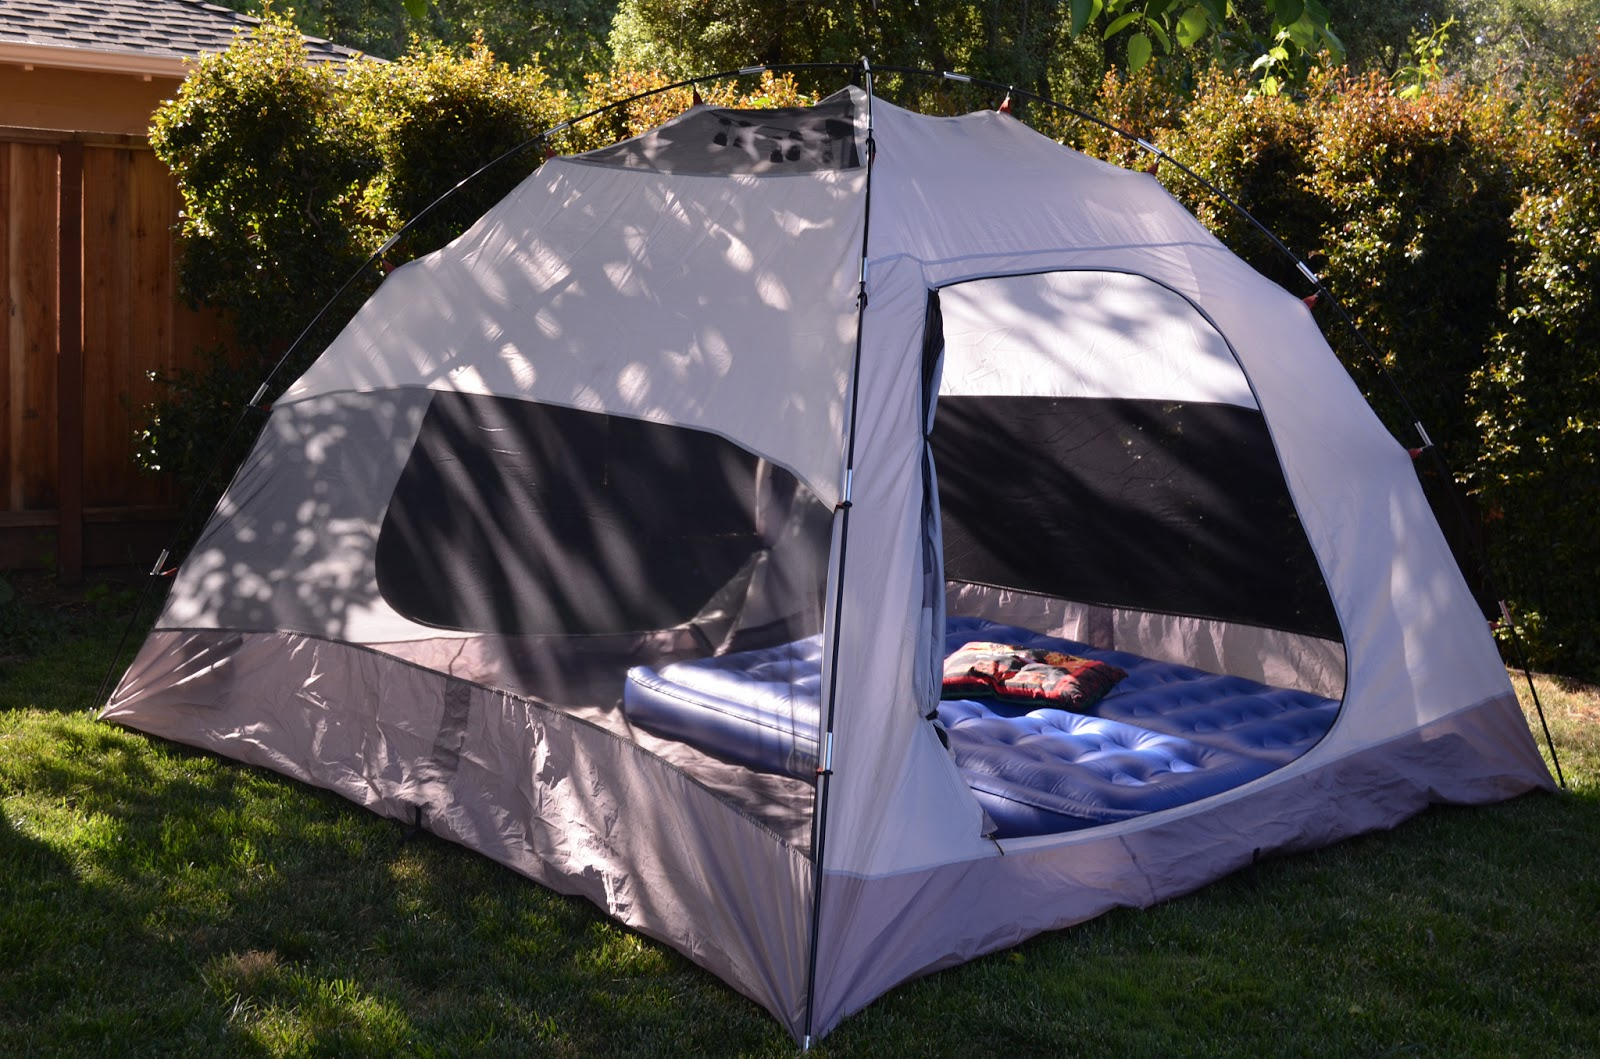 Tent Camping In Backyard : We set up our tent in the backyard and put our air mattress in it It